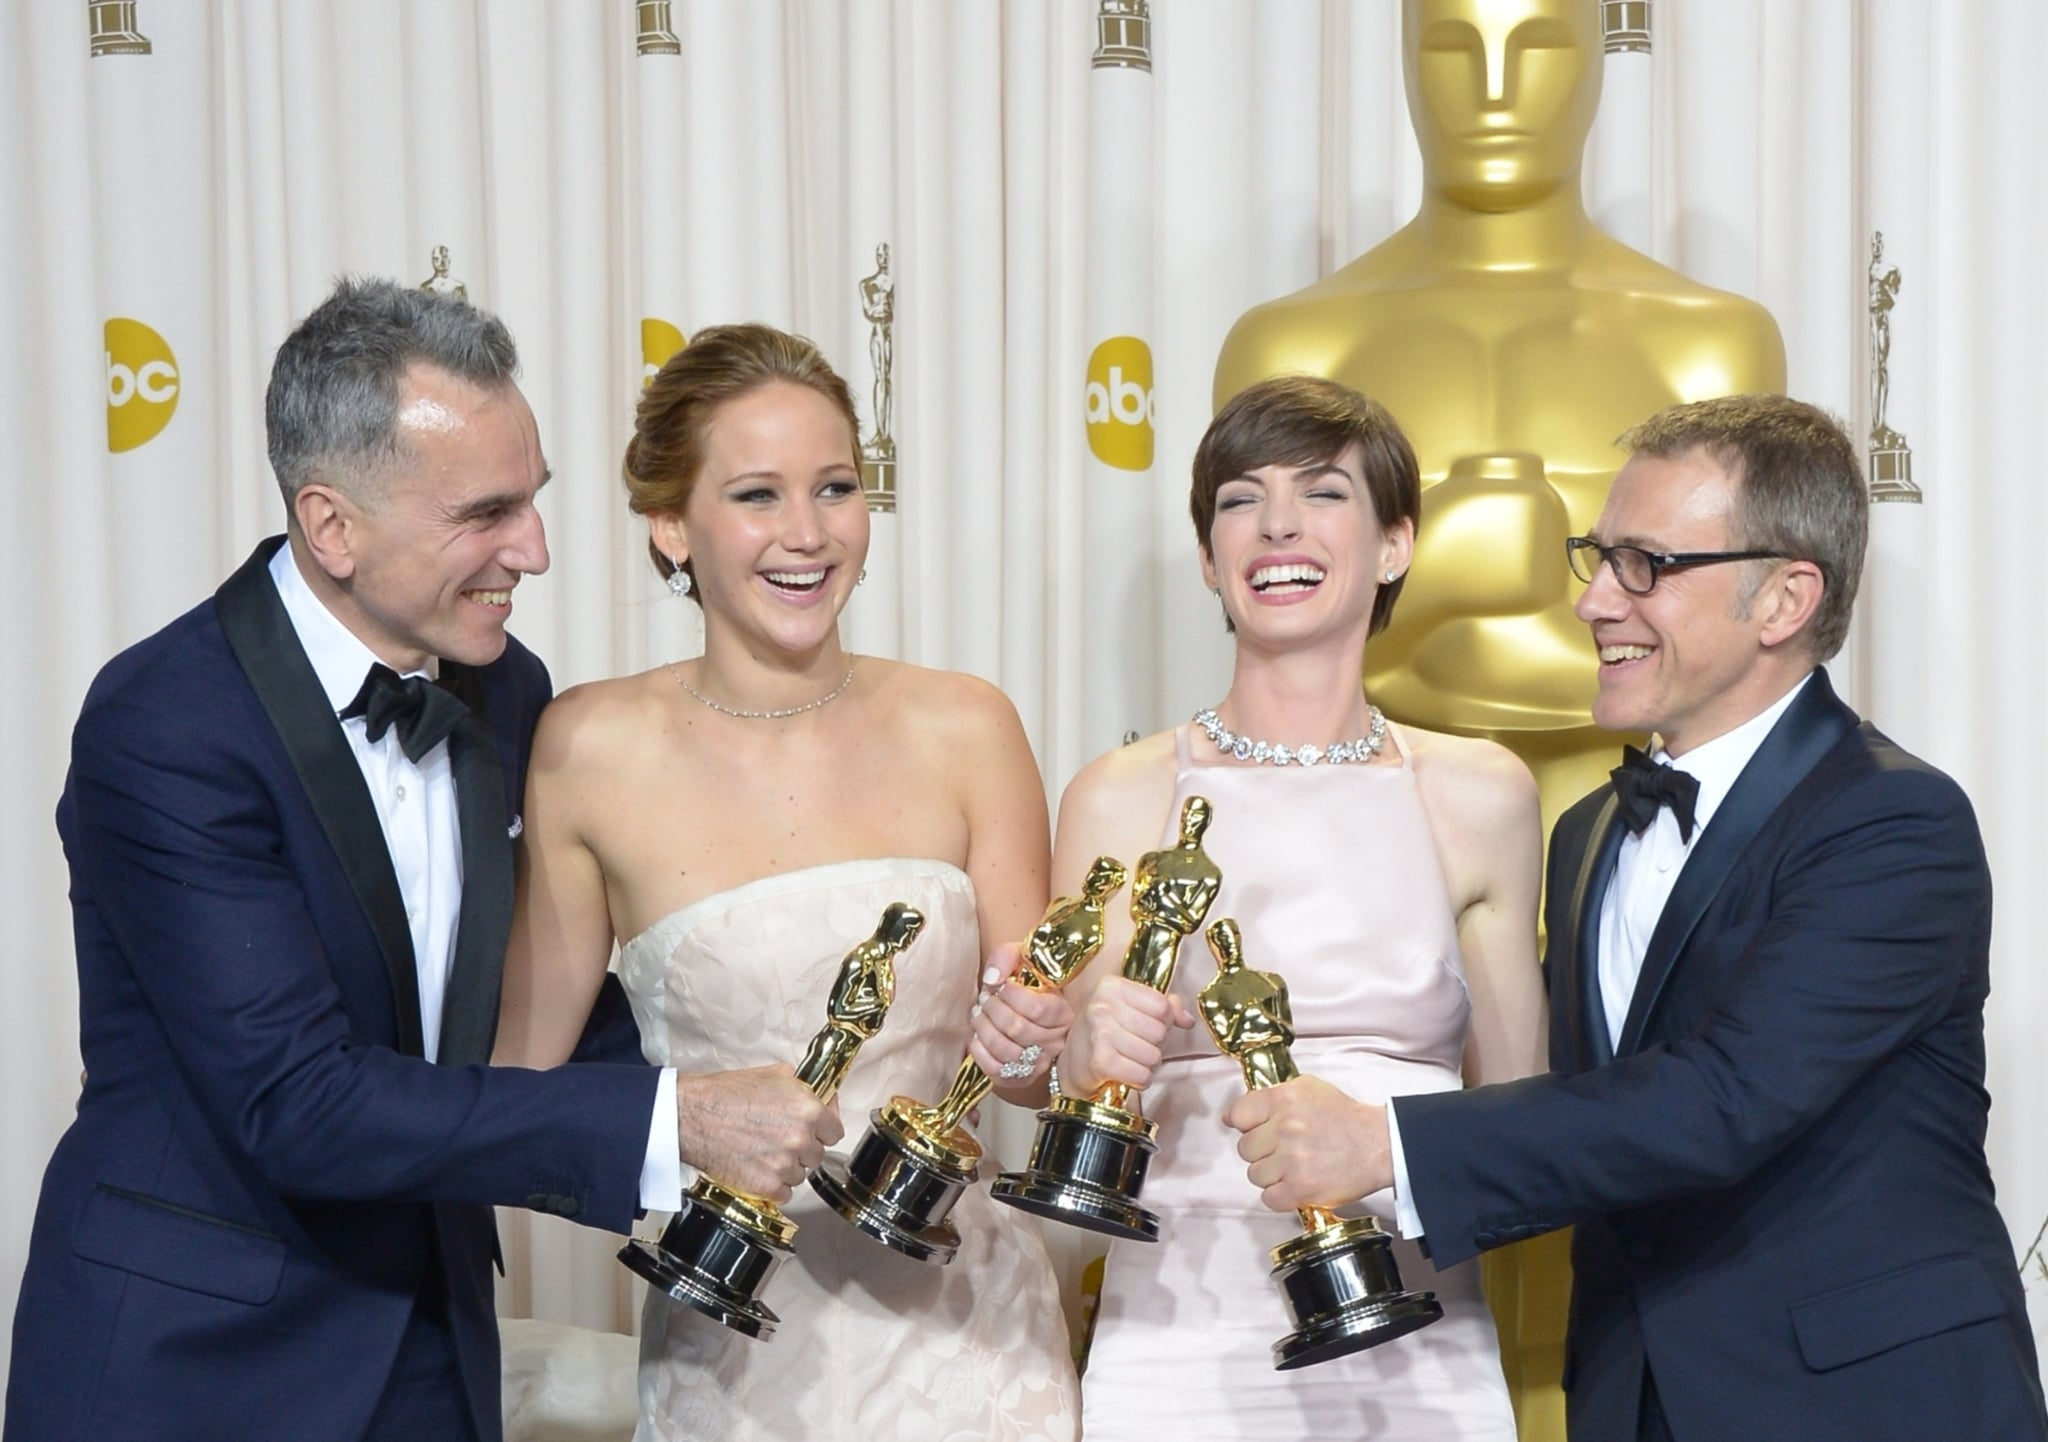 Daniel Day-Lewis, Jennifer Lawrence, Anne Hathaway, and Christoph Waltz toasted with their gold Oscars.